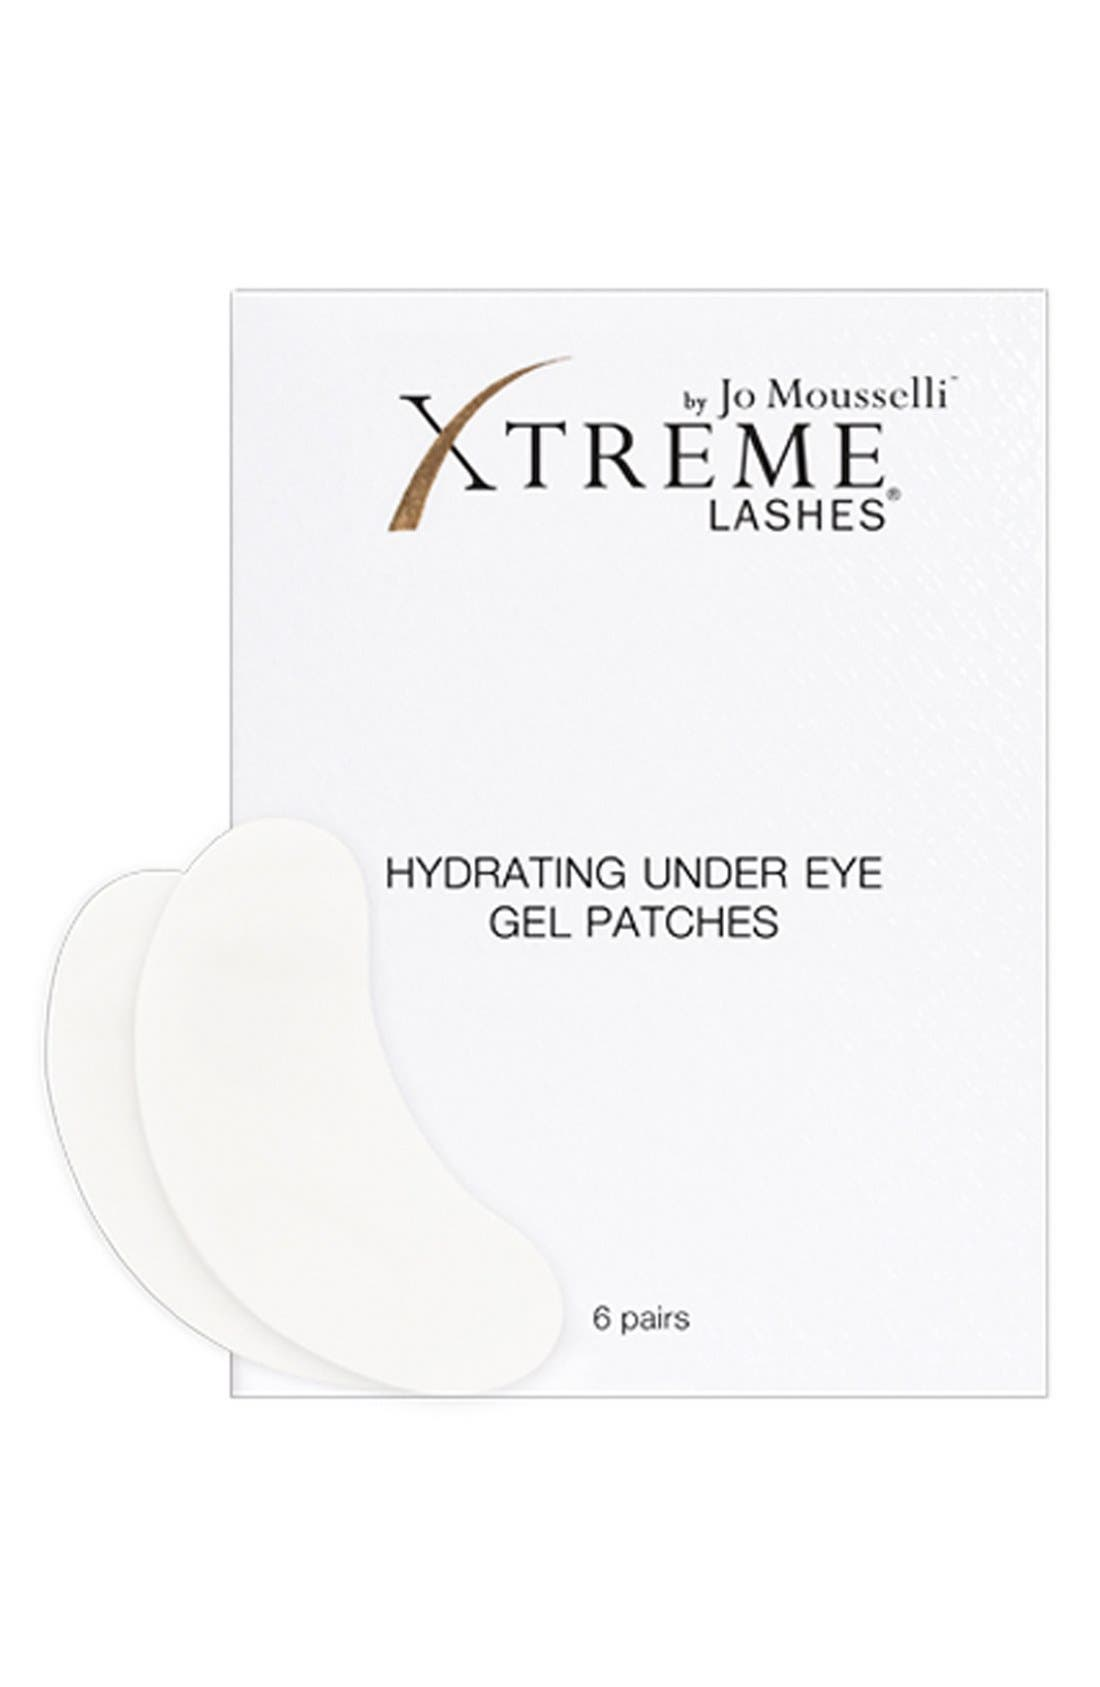 Xtreme Lashes by Jo Mousselli® Hydrating Under Eye Gel Patches